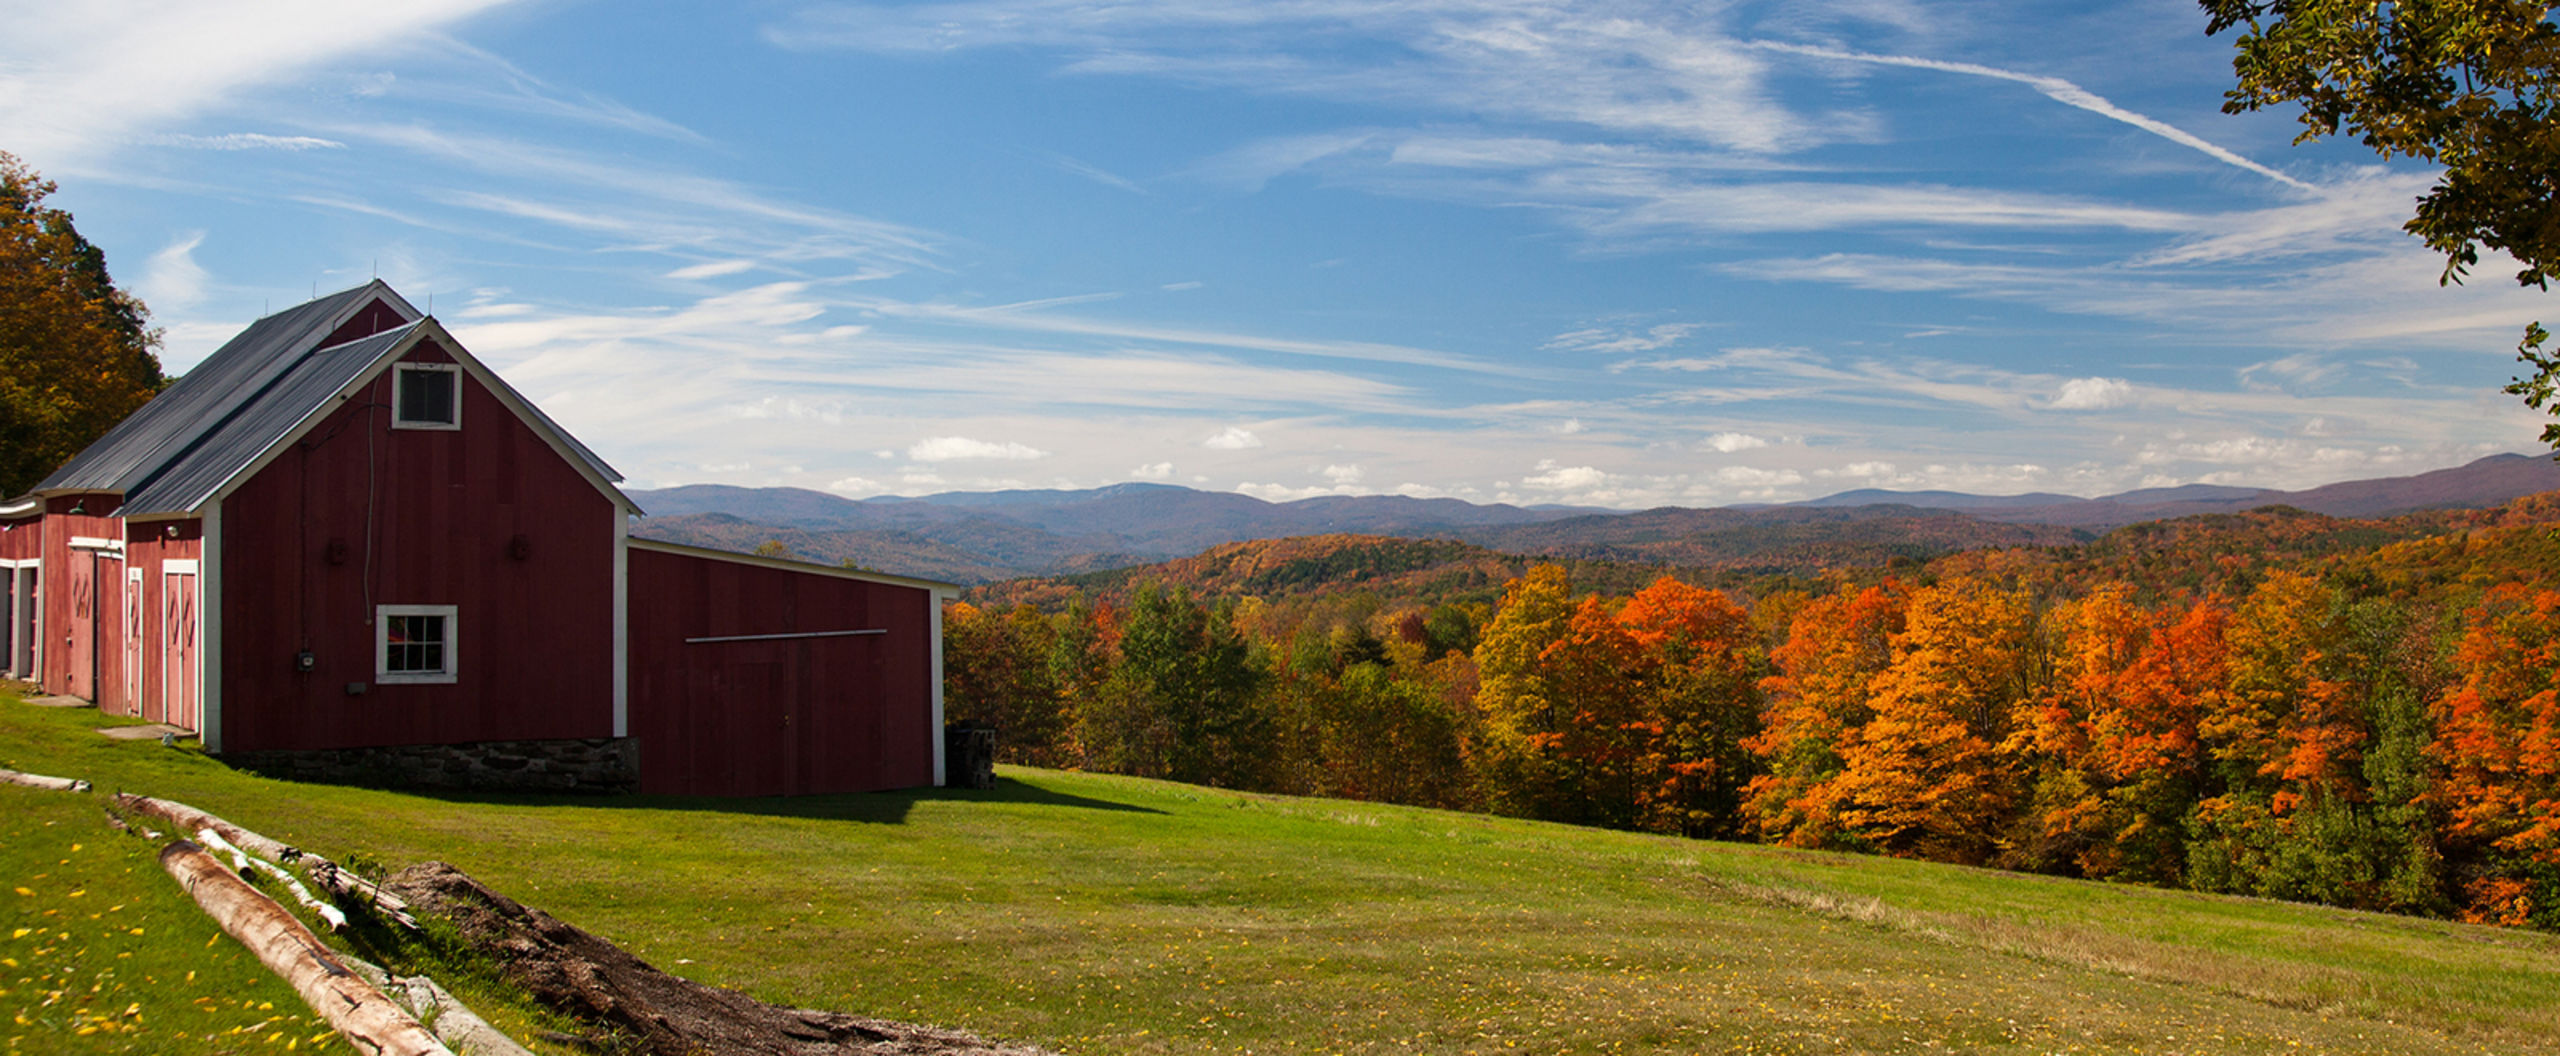 From Southern Vermont to the Champlain Valley . . .